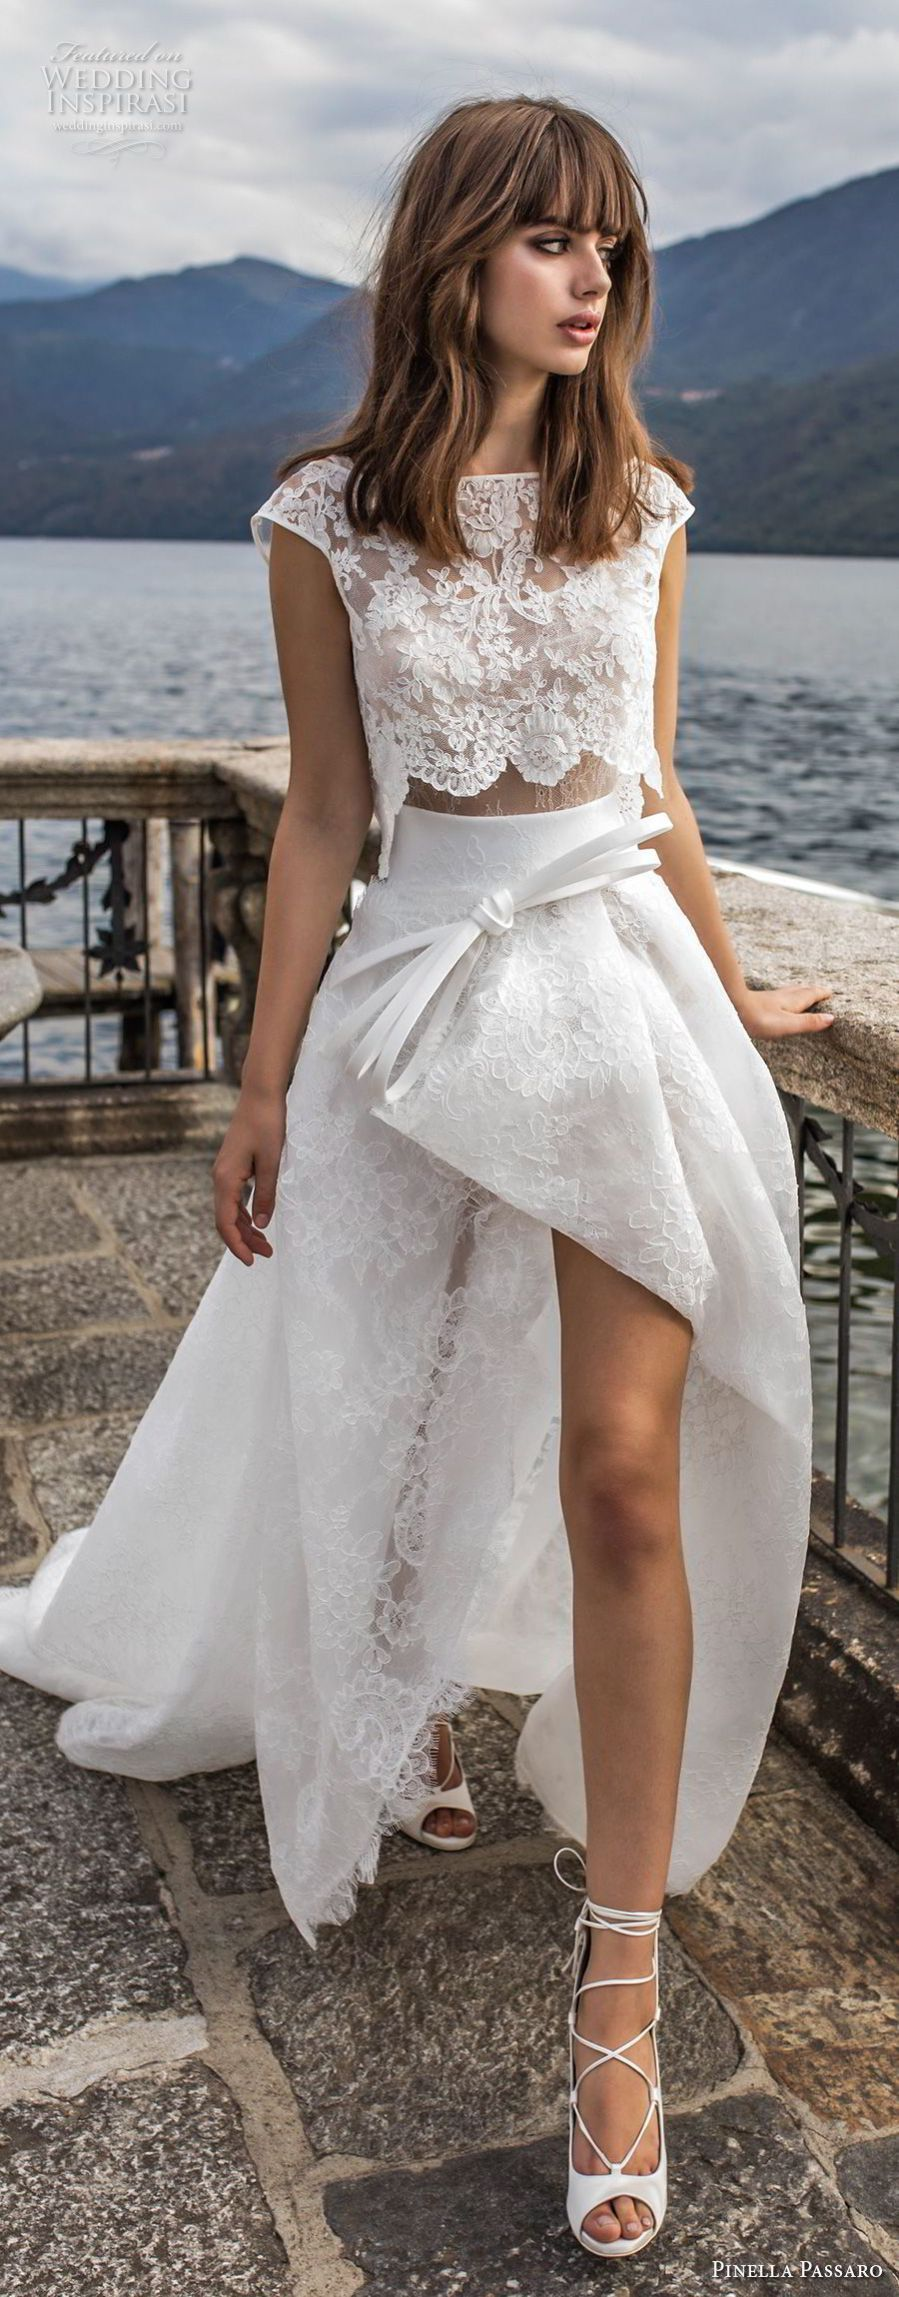 Pinella passaro wedding dresses mariée pinterest chapel